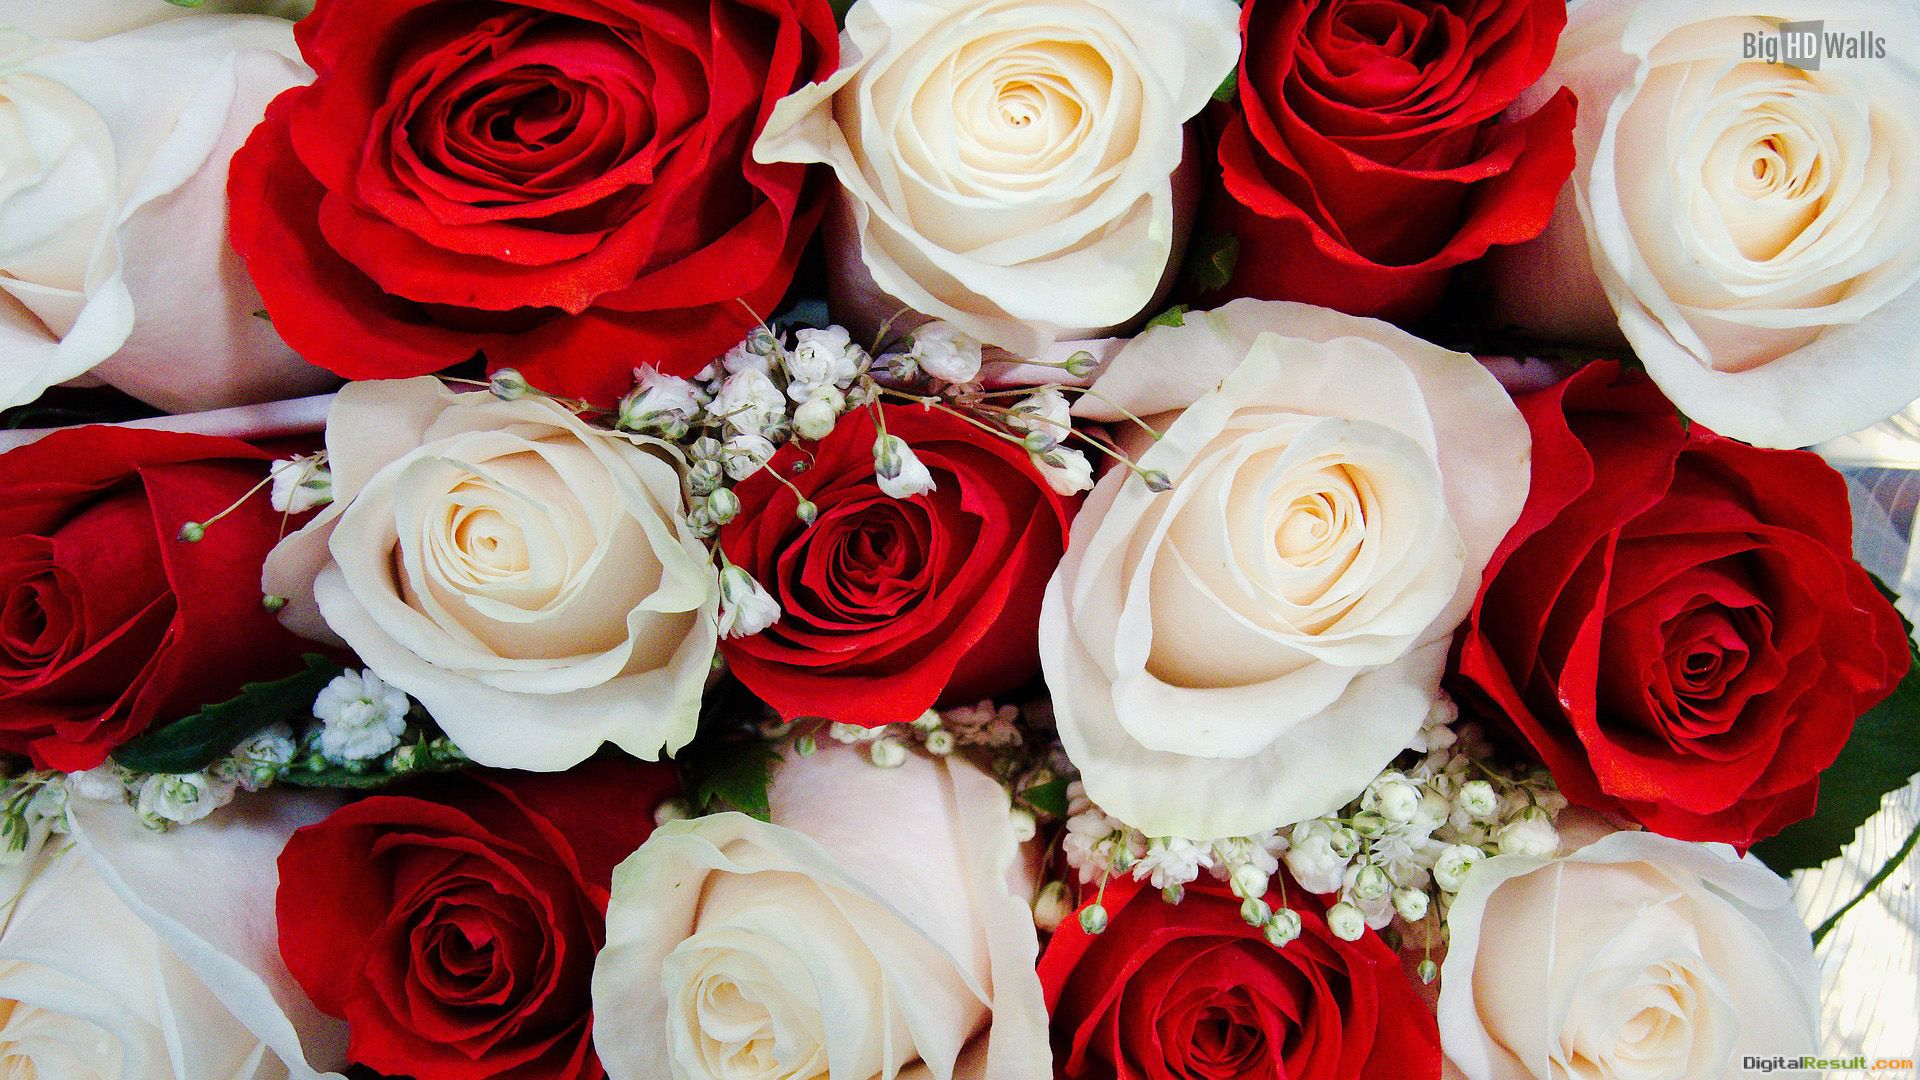 Wedding Flowers Red And White Roses Red and white roses wallpaper 850